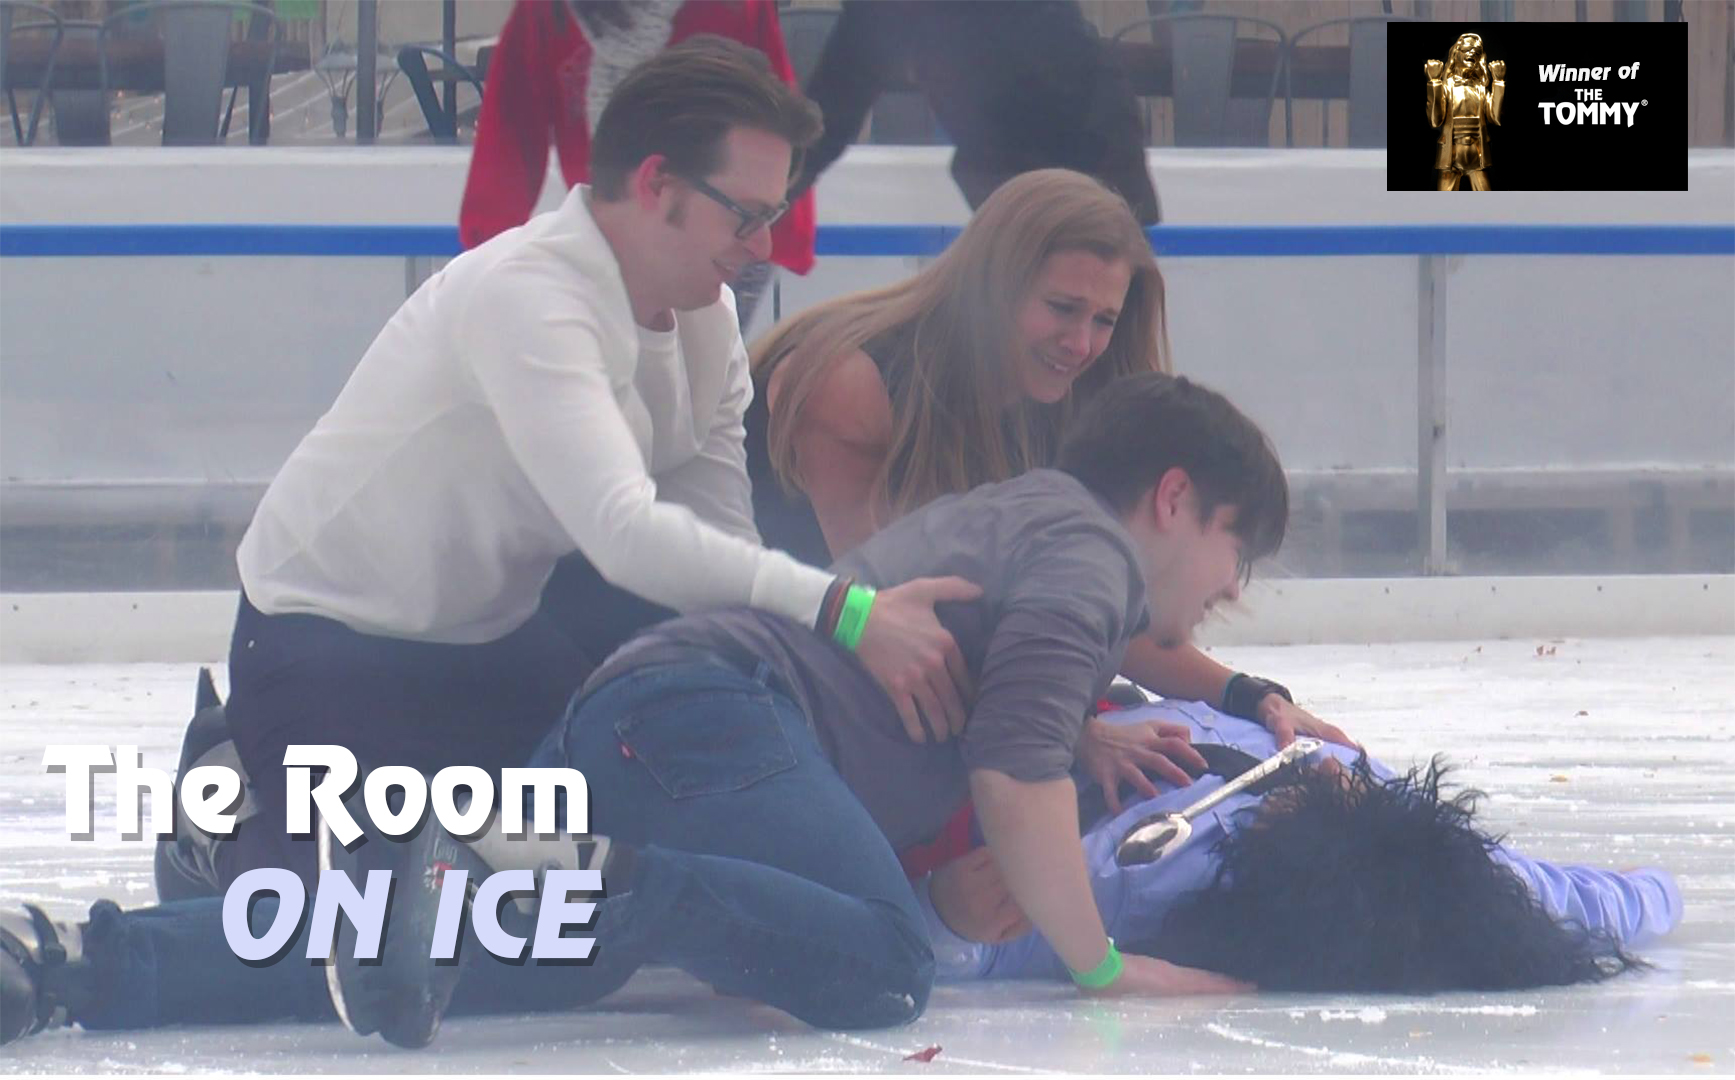 The Room on Ice